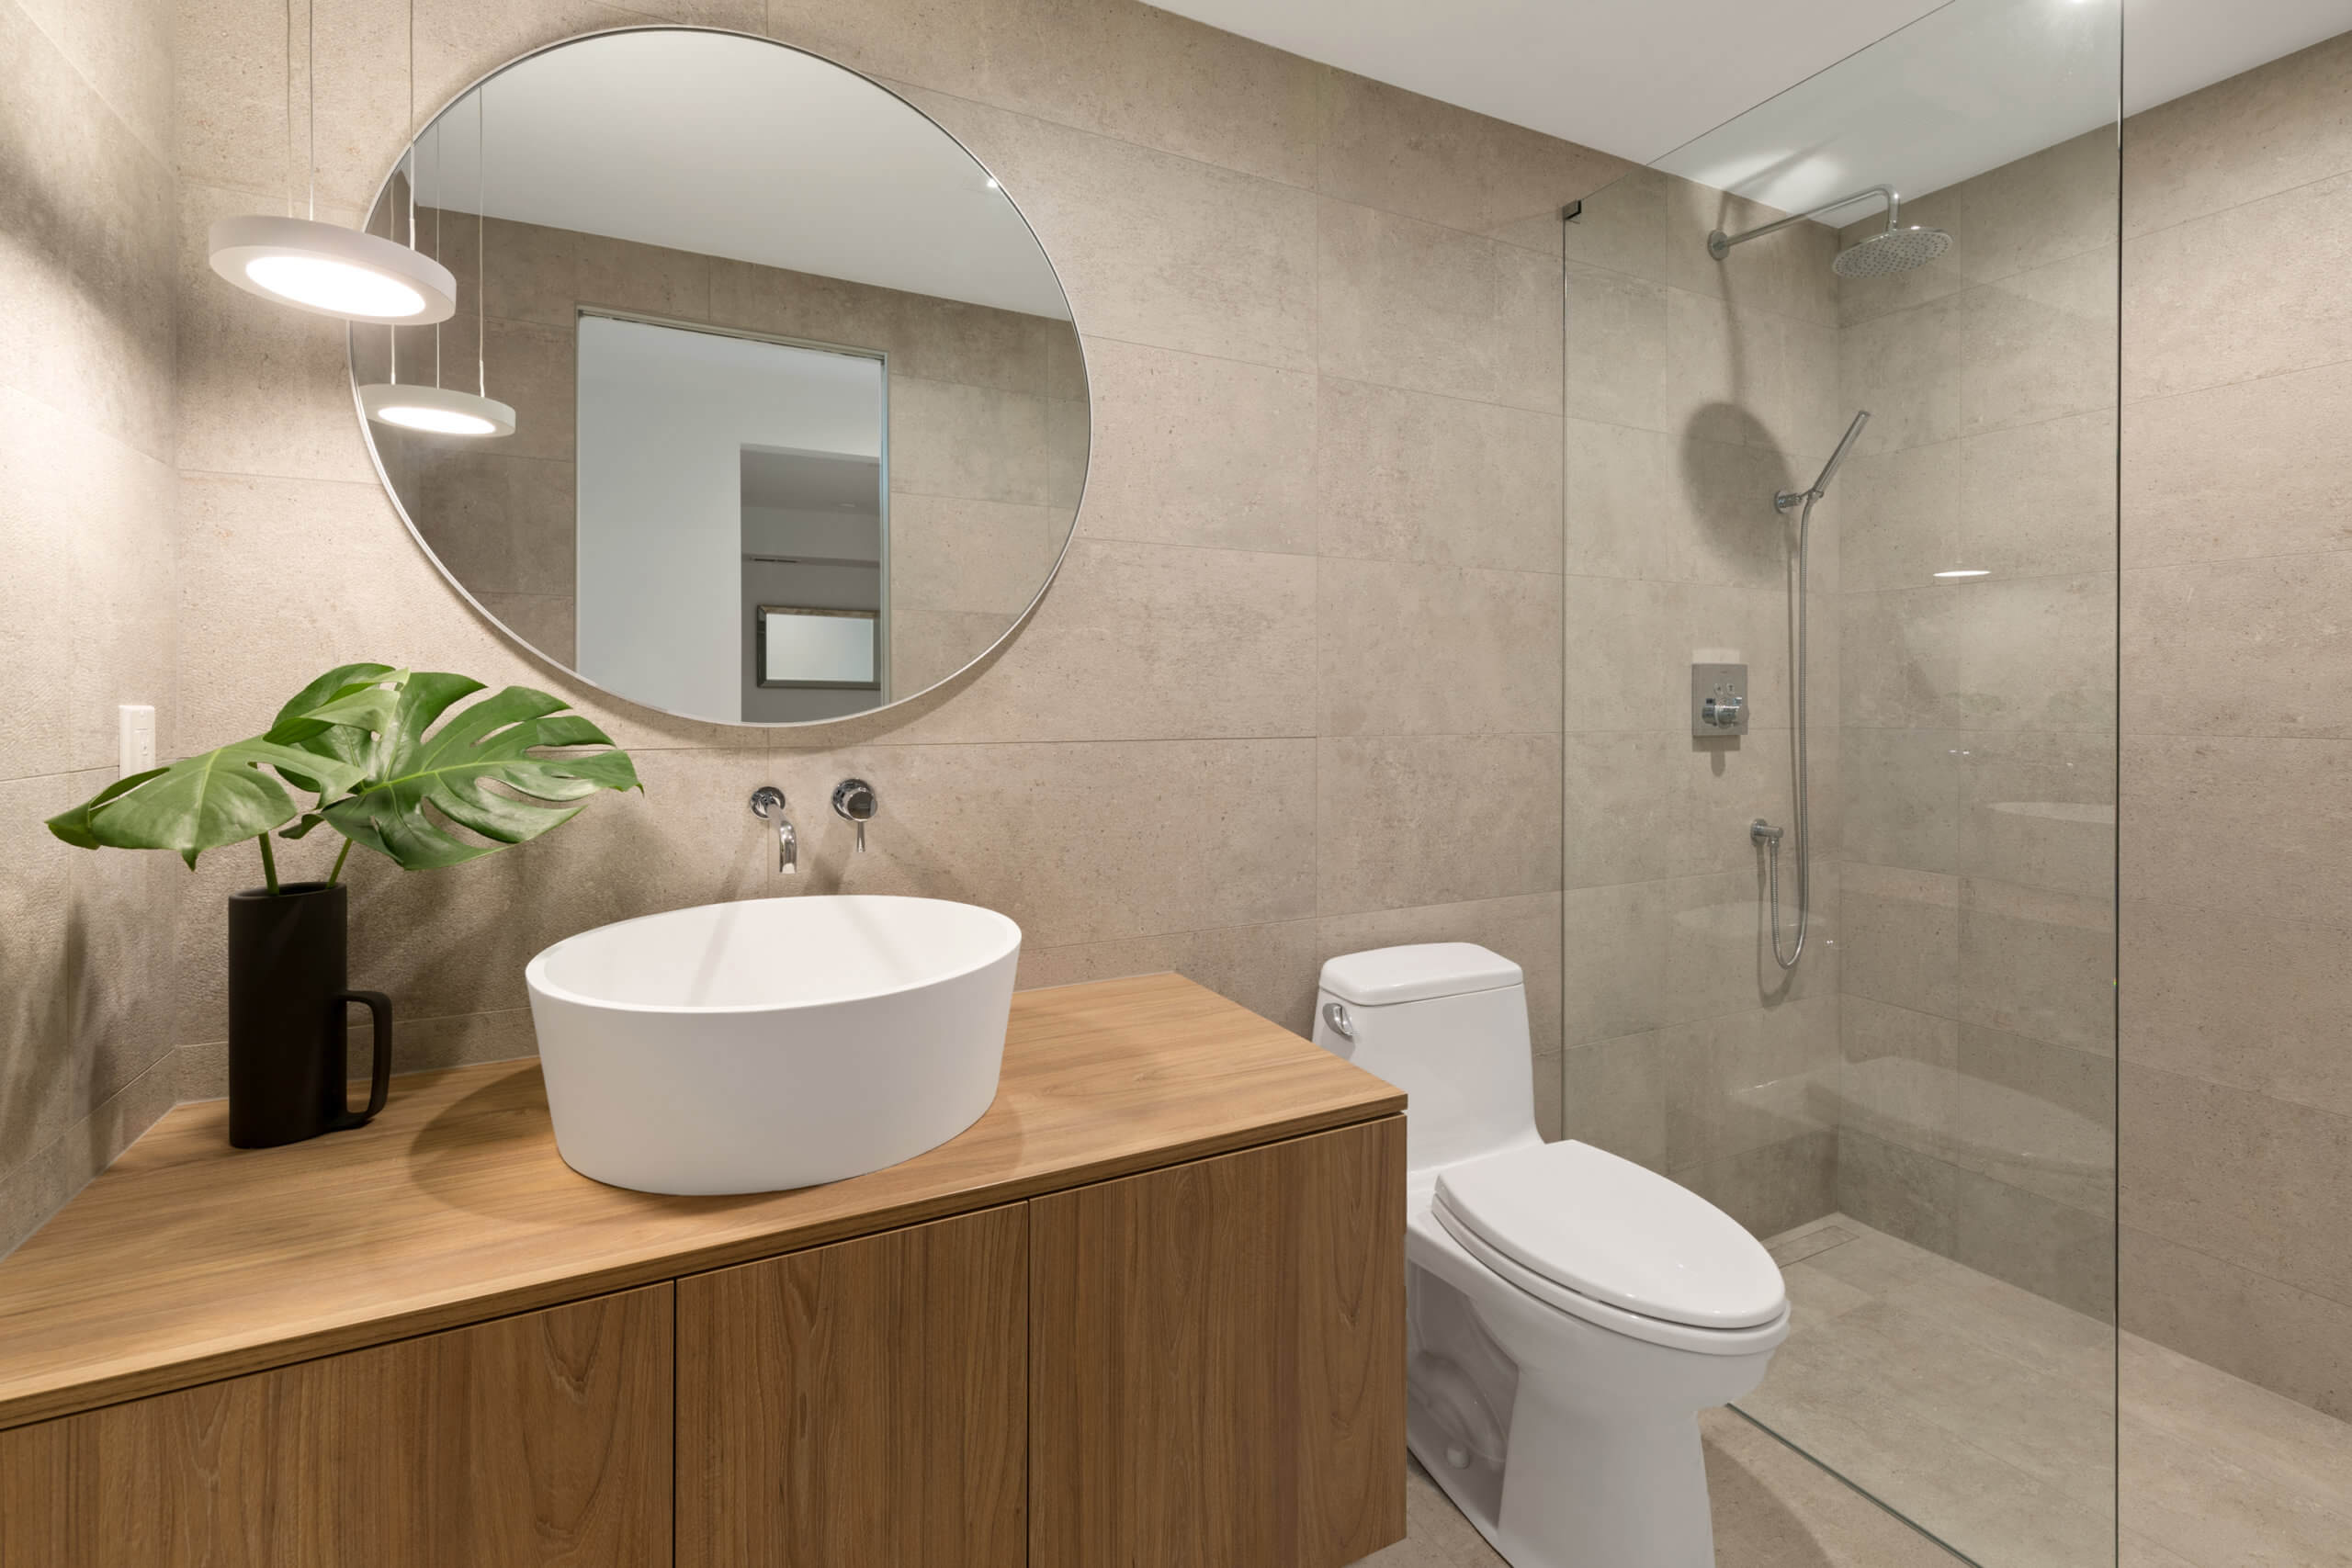 Clean and modern bathroom with custom cabinetry and glass shower, designed by Cincinnati Interior Designer, RM Interiors